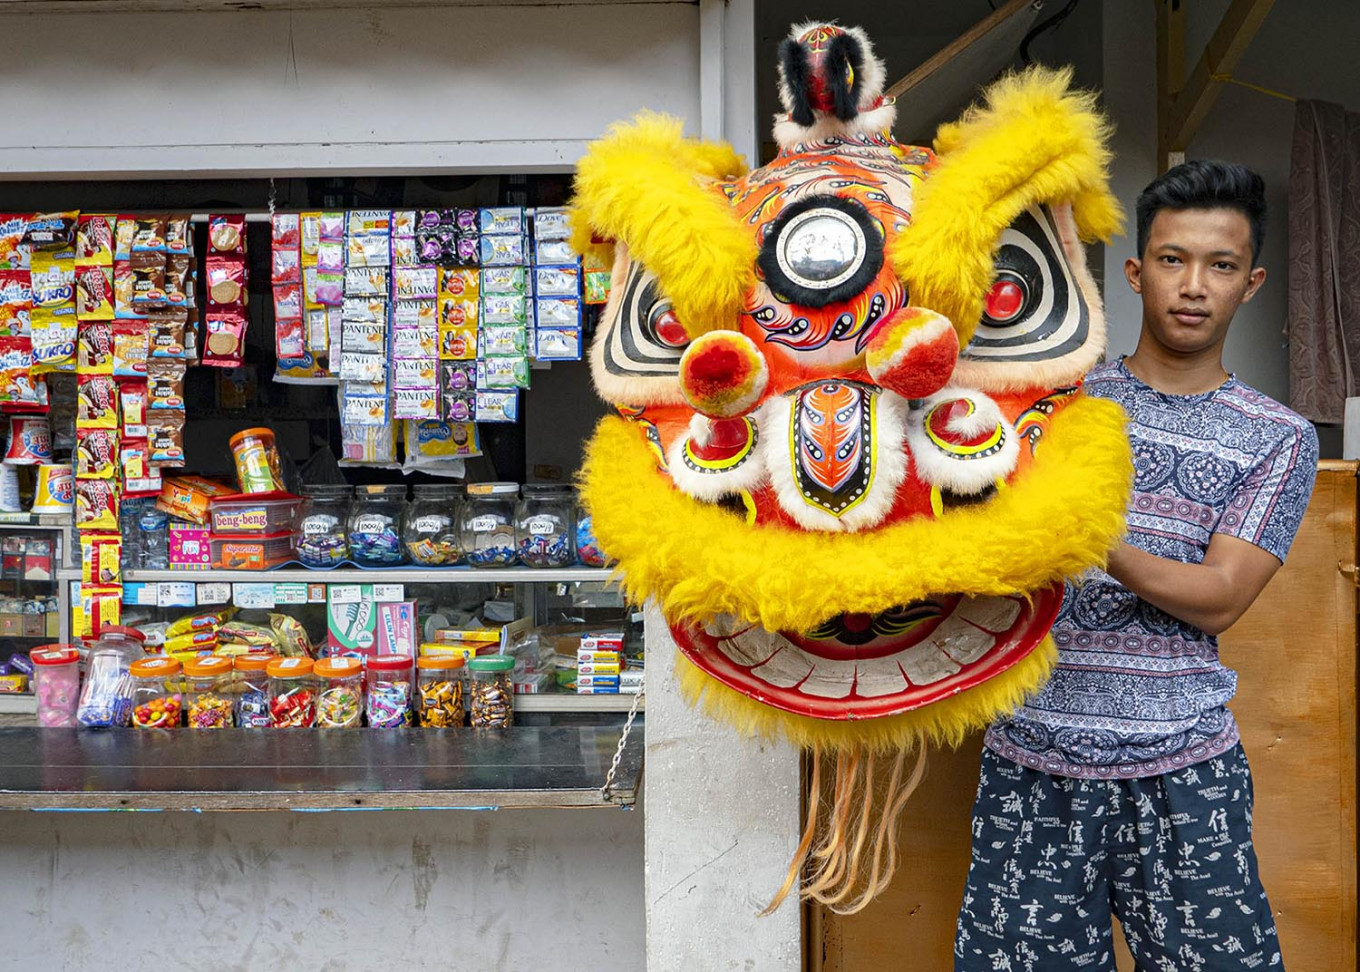 Steven grew up near the temple and wishes to preserve his family's tradition in performing the lion dance. JP/Bismo Agung